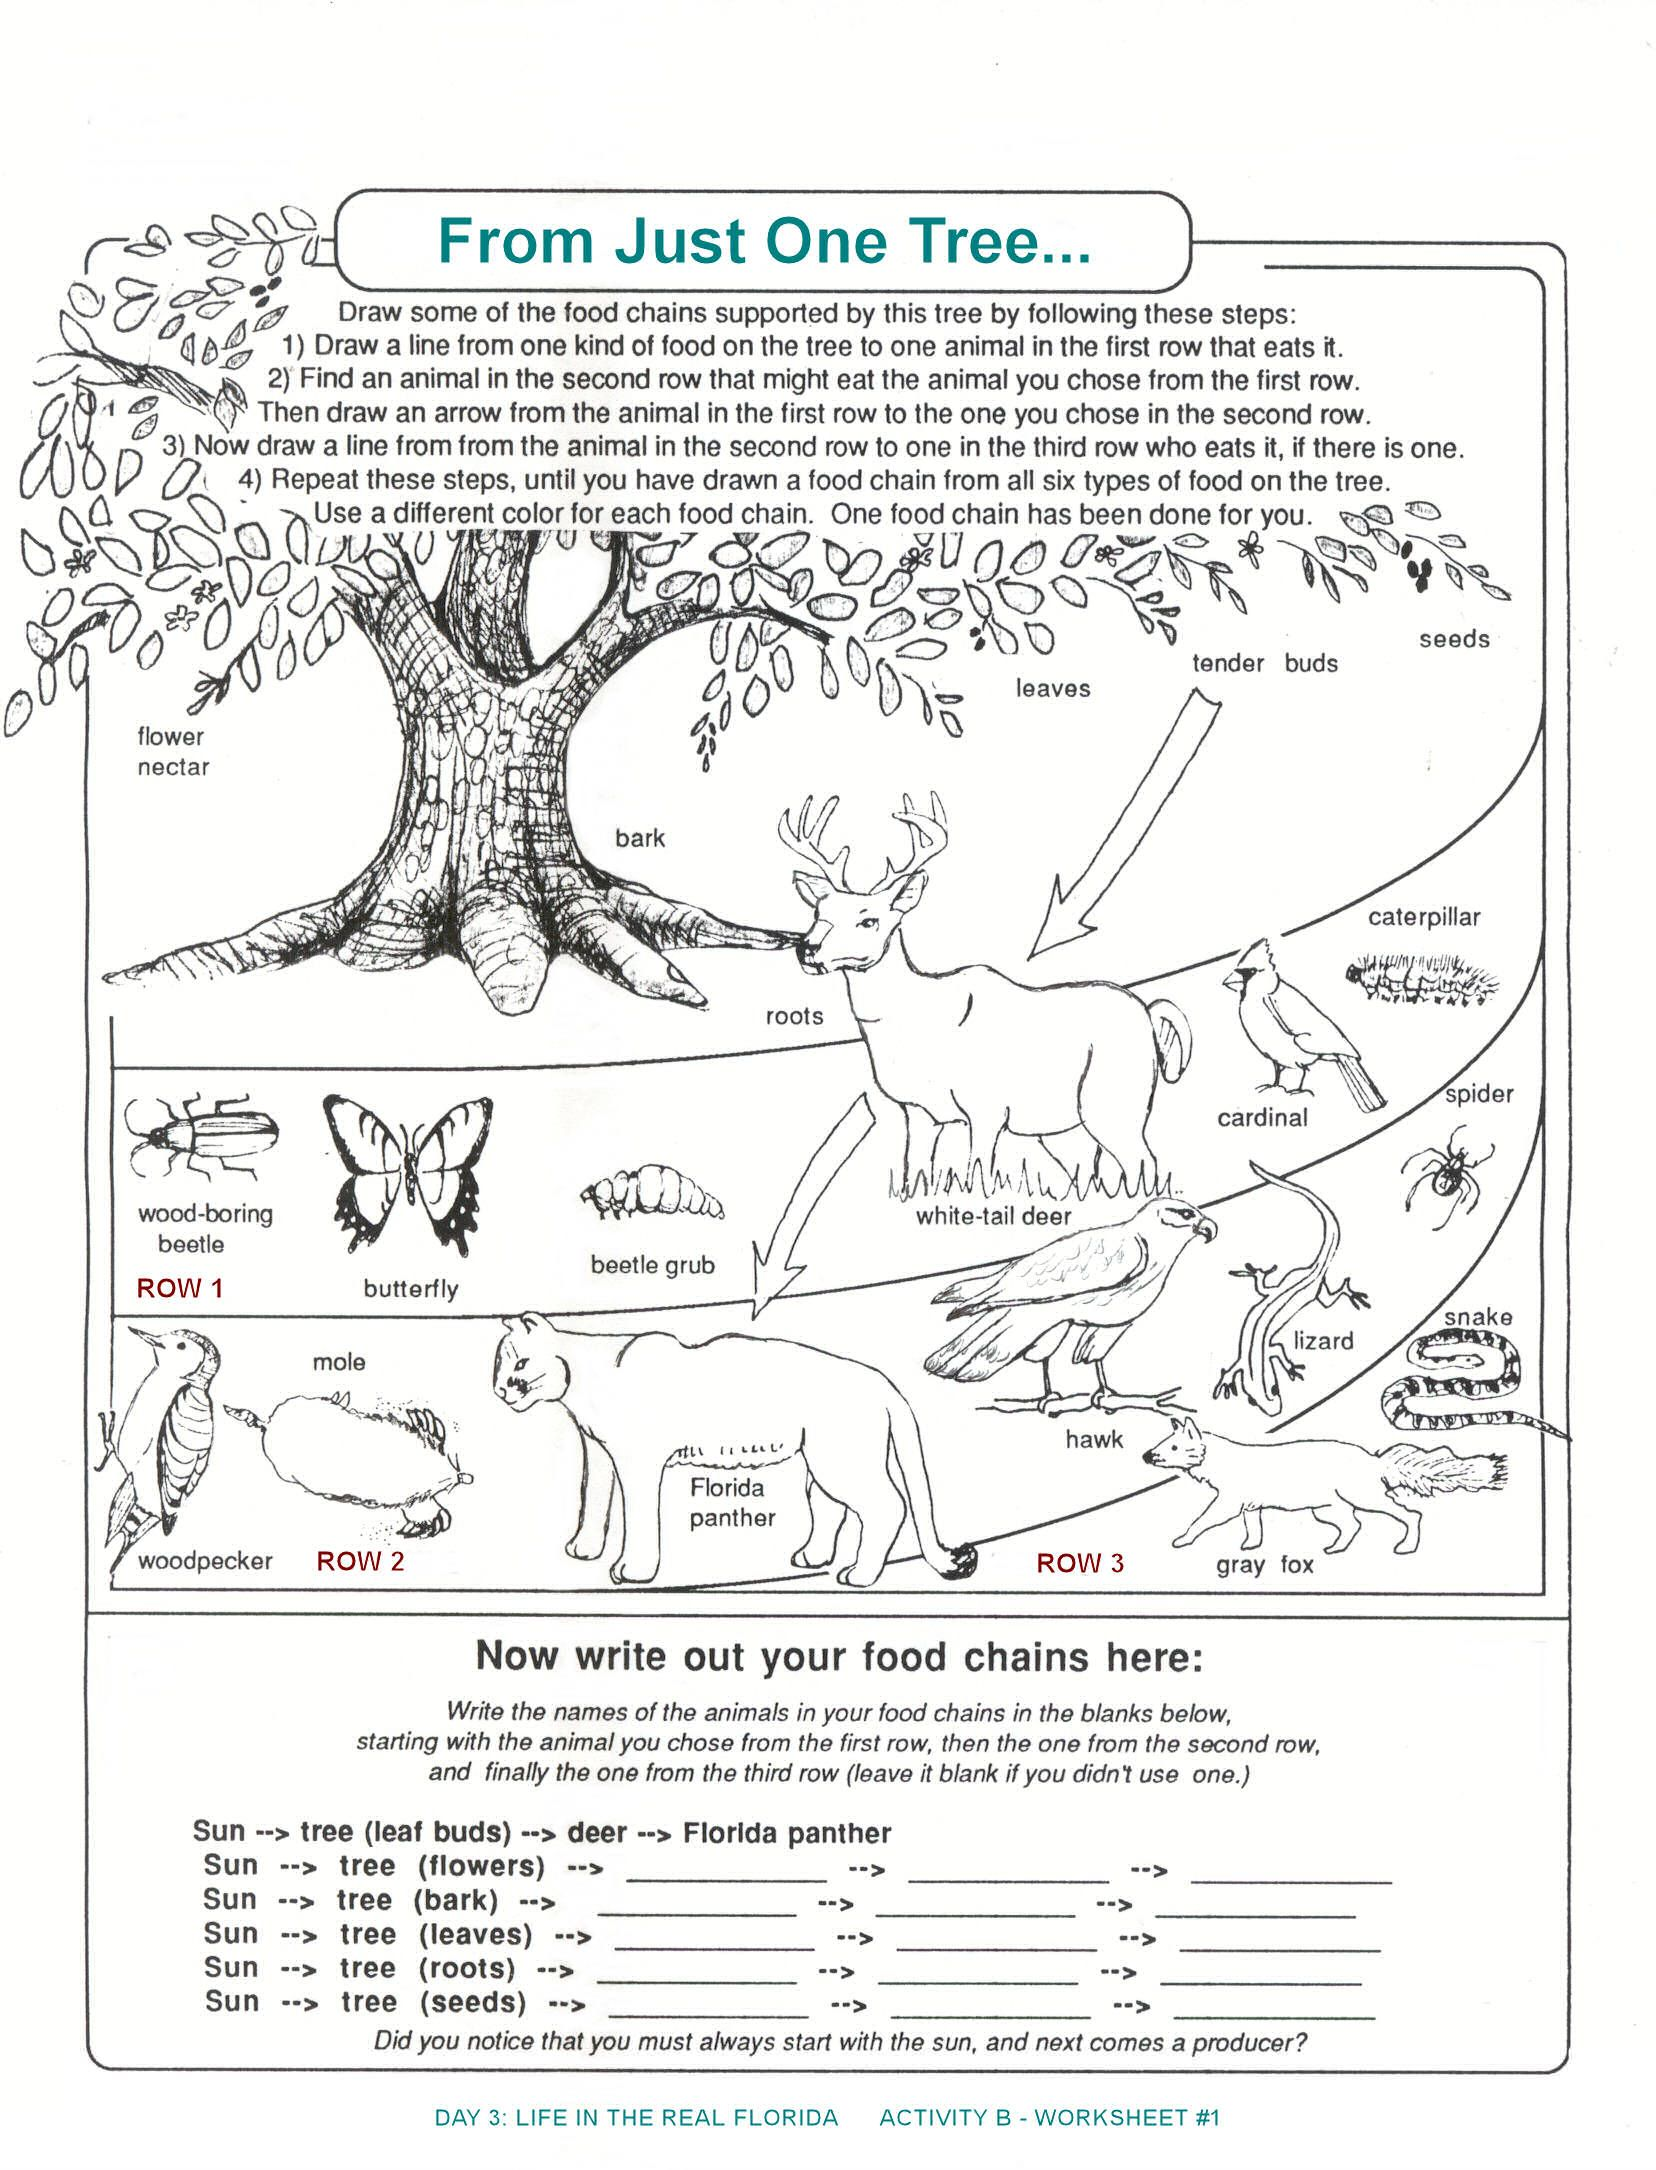 decomposers worksheets for kids – Food Chains Worksheet